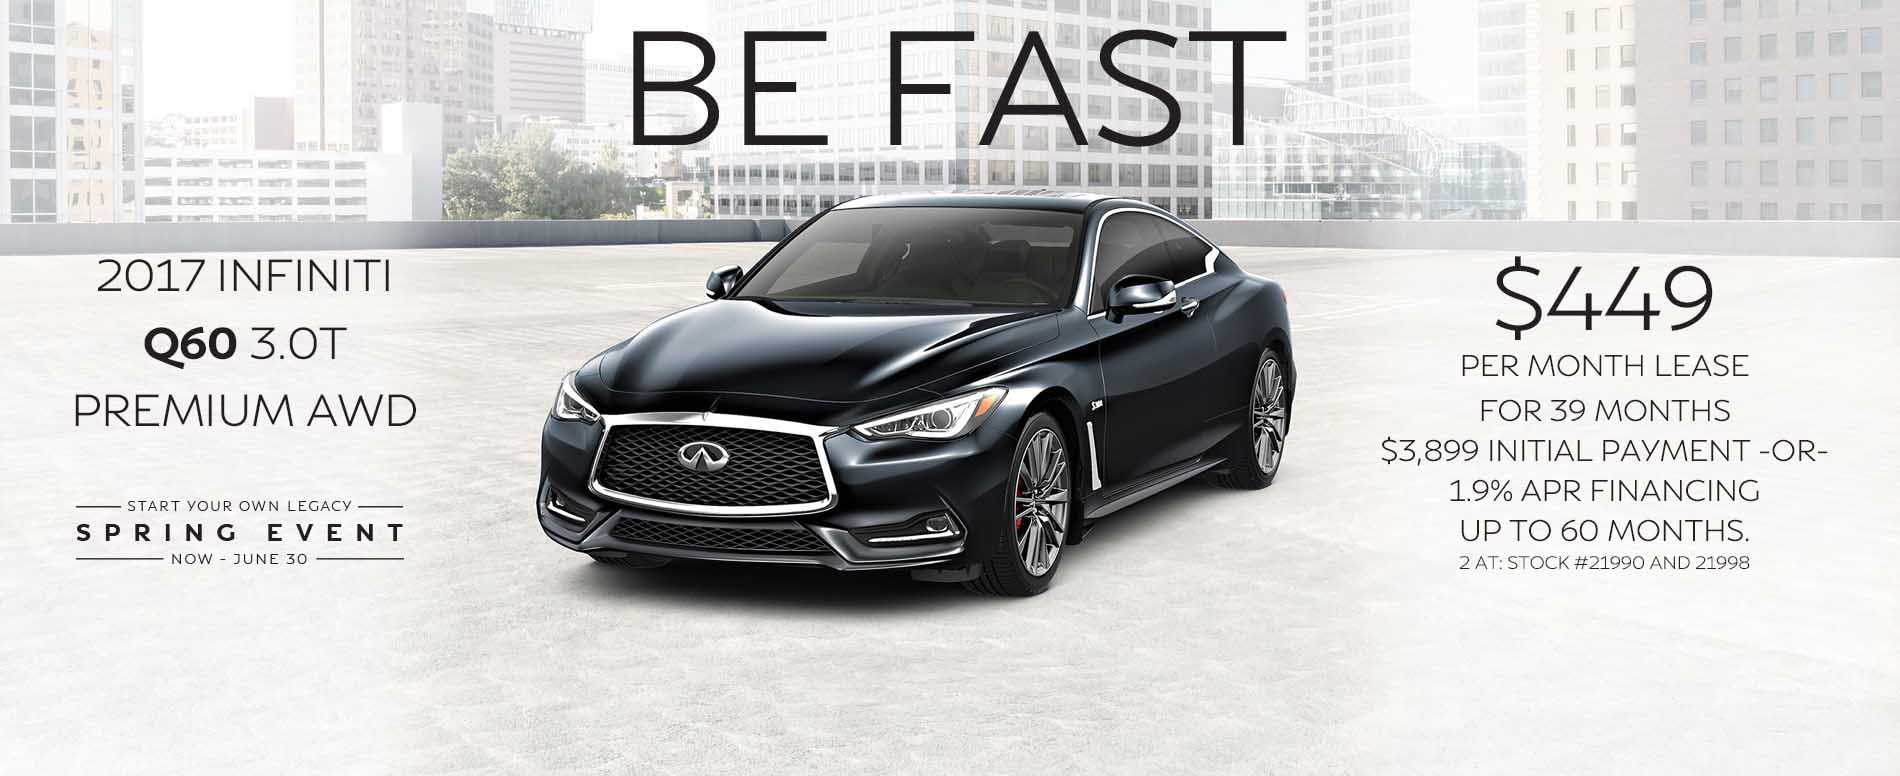 BE fast. Lease a 2017 INFINITI Q60 for $449 per month with $3,899 due at signing or 1.9% APR financing up to 60 months.